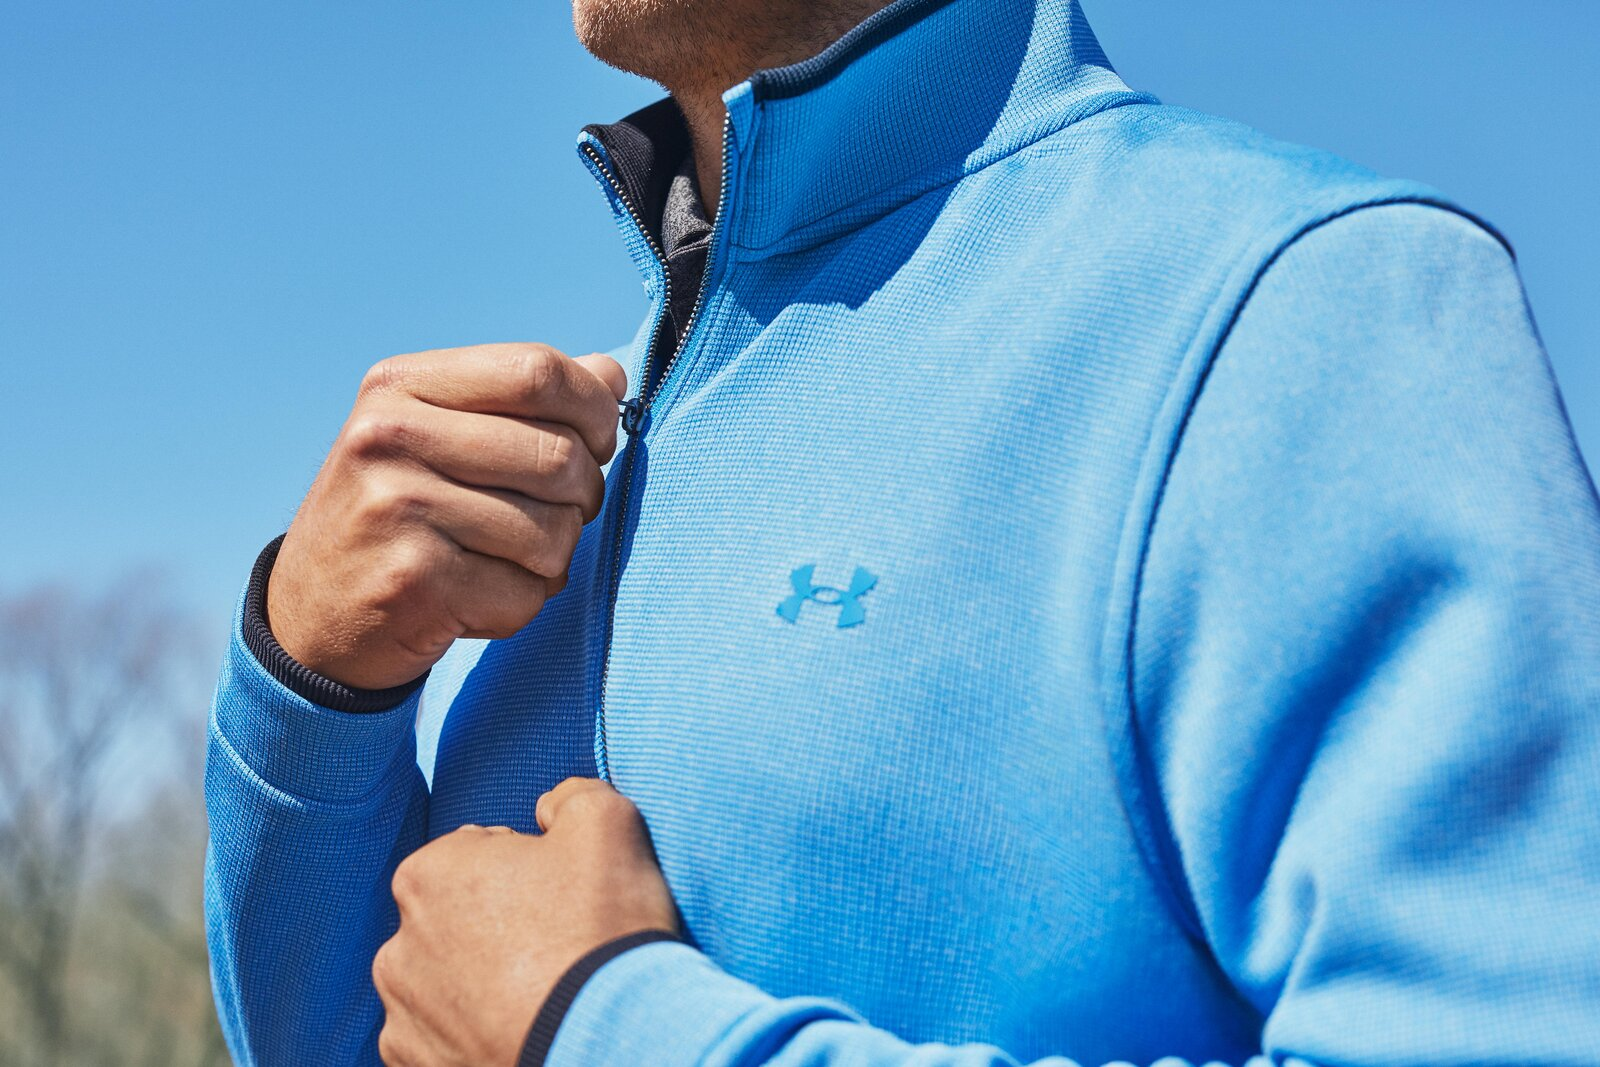 Updated SweaterFleece fabric has soft, brushed interior with added stretch for complete mobility